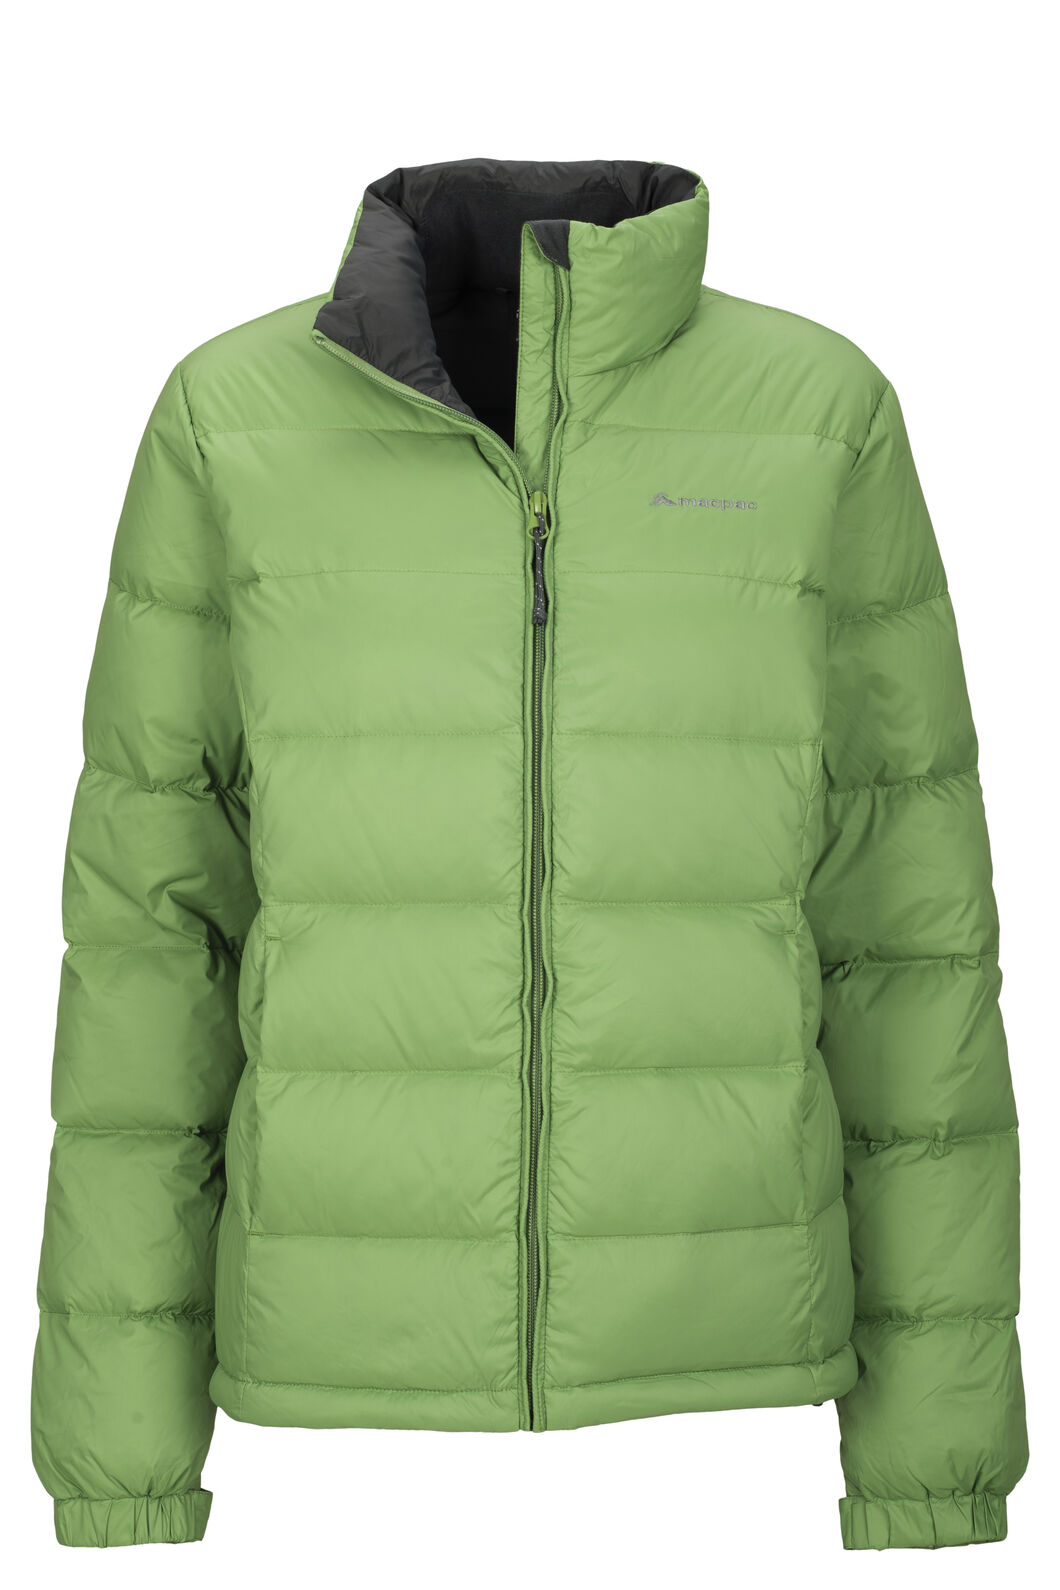 Macpac Halo Down Jacket — Women's, Jade Green, hi-res